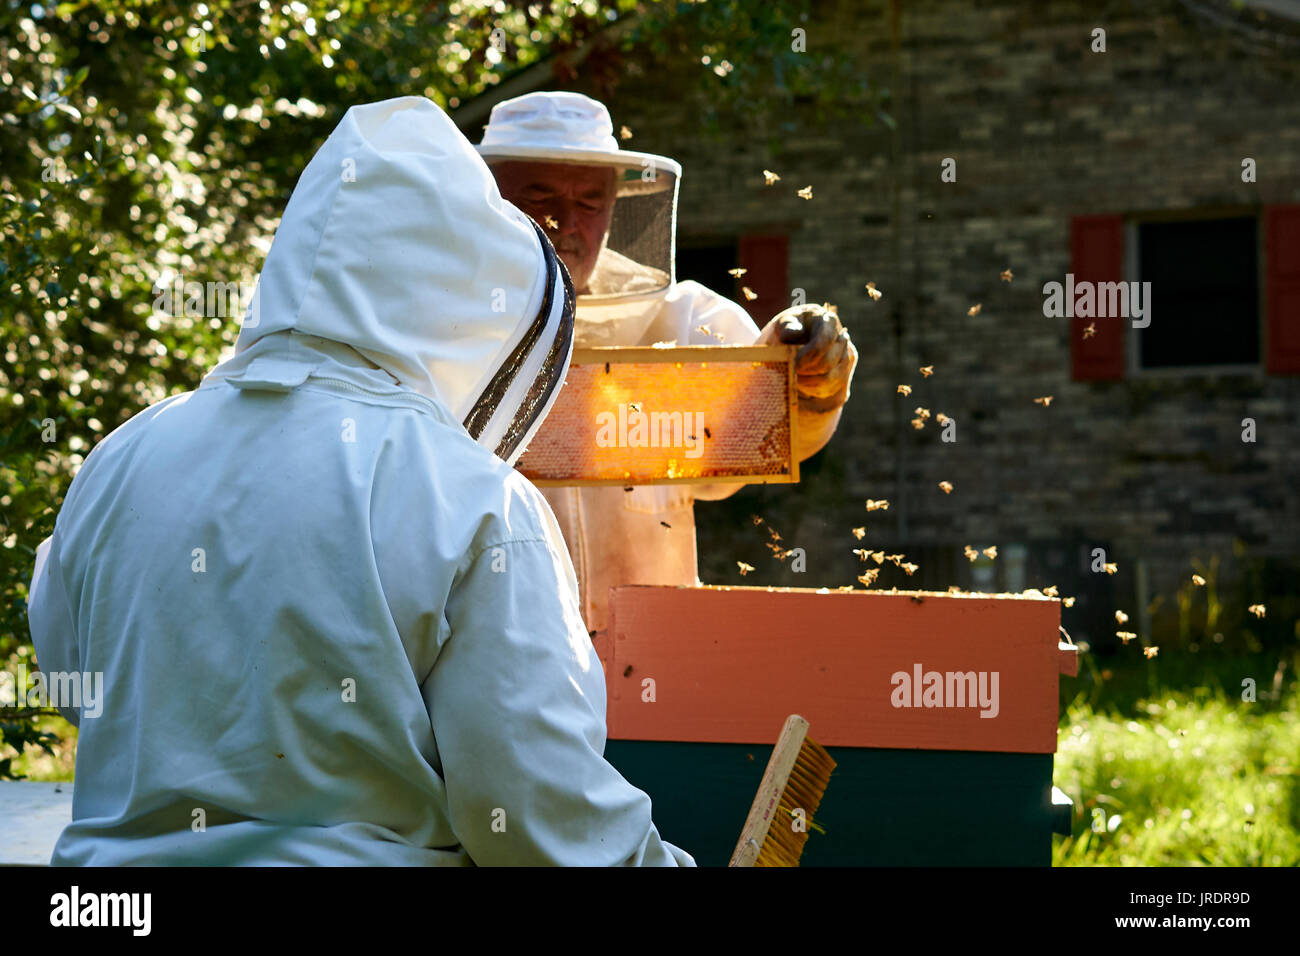 The golden color honey is the prize that bee keepers are looking for. Jim and Patti Butler of Vernon, Alabama get ready to extract the honey fron the  - Stock Image